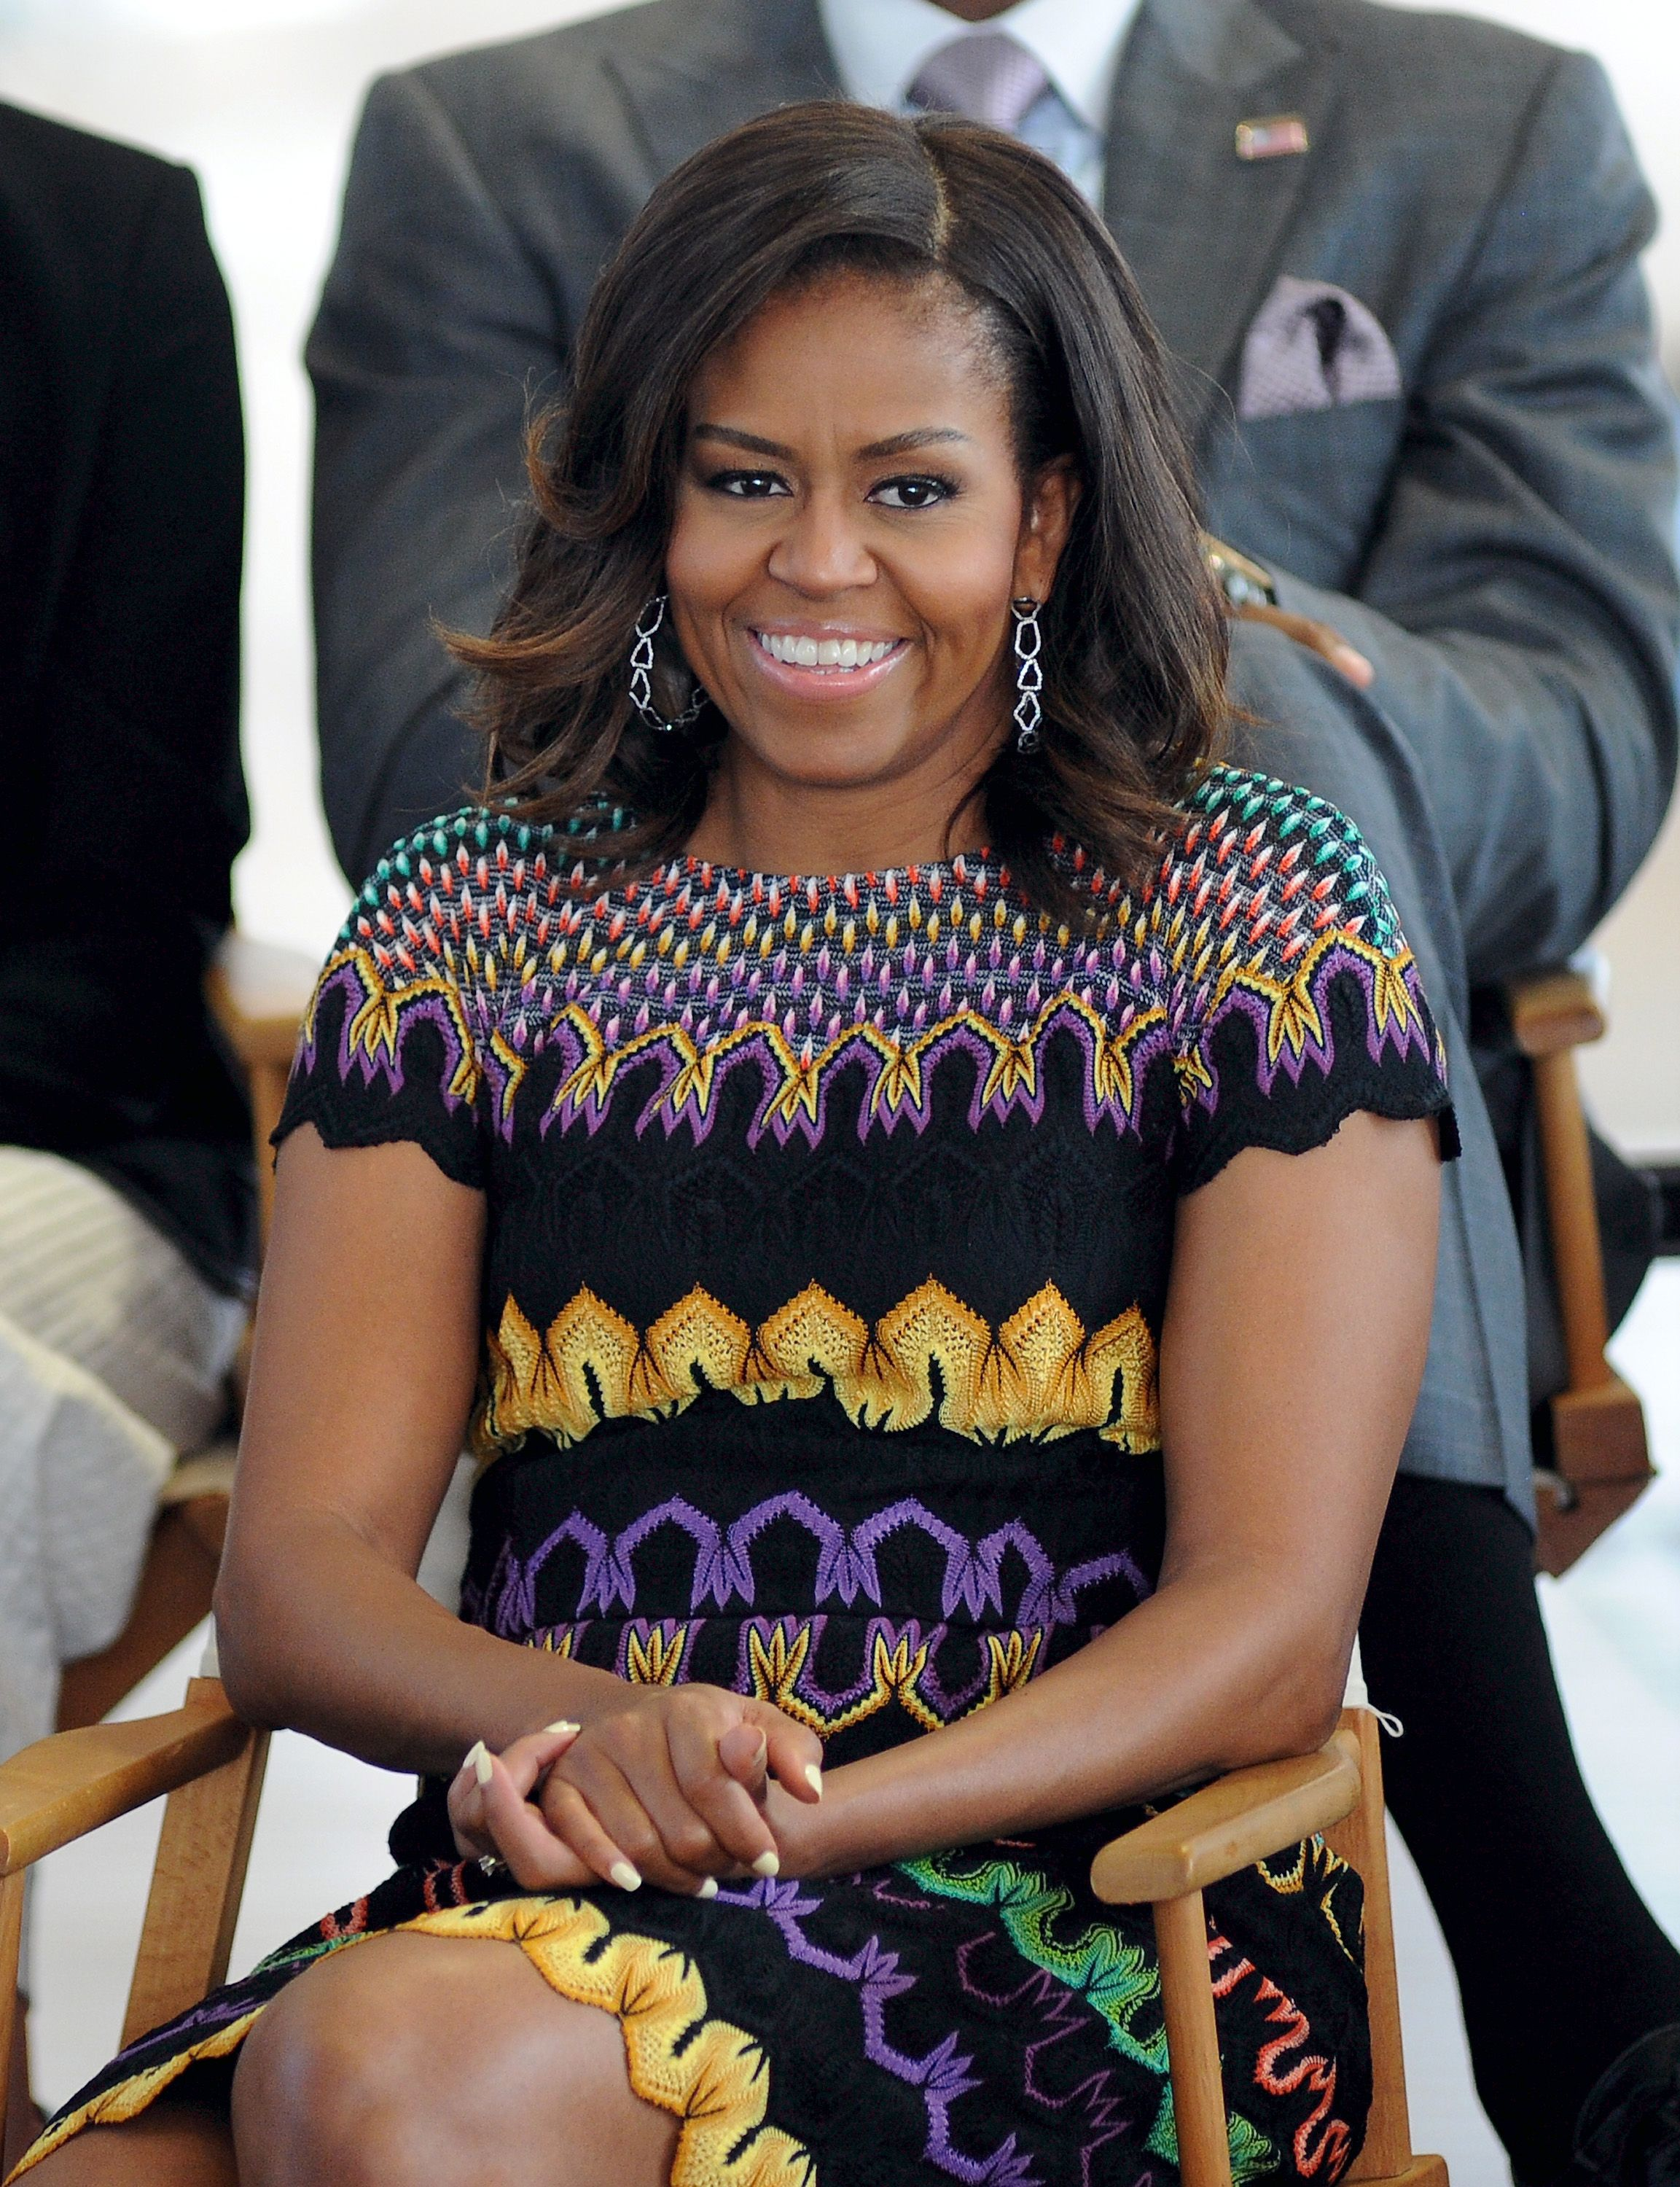 Michelle Obama during question time with 60 American college students at the United States Pavilion at the Milan Expo 2015 on June 18, 2015 in Milan, Italy | Photo: Getty Images